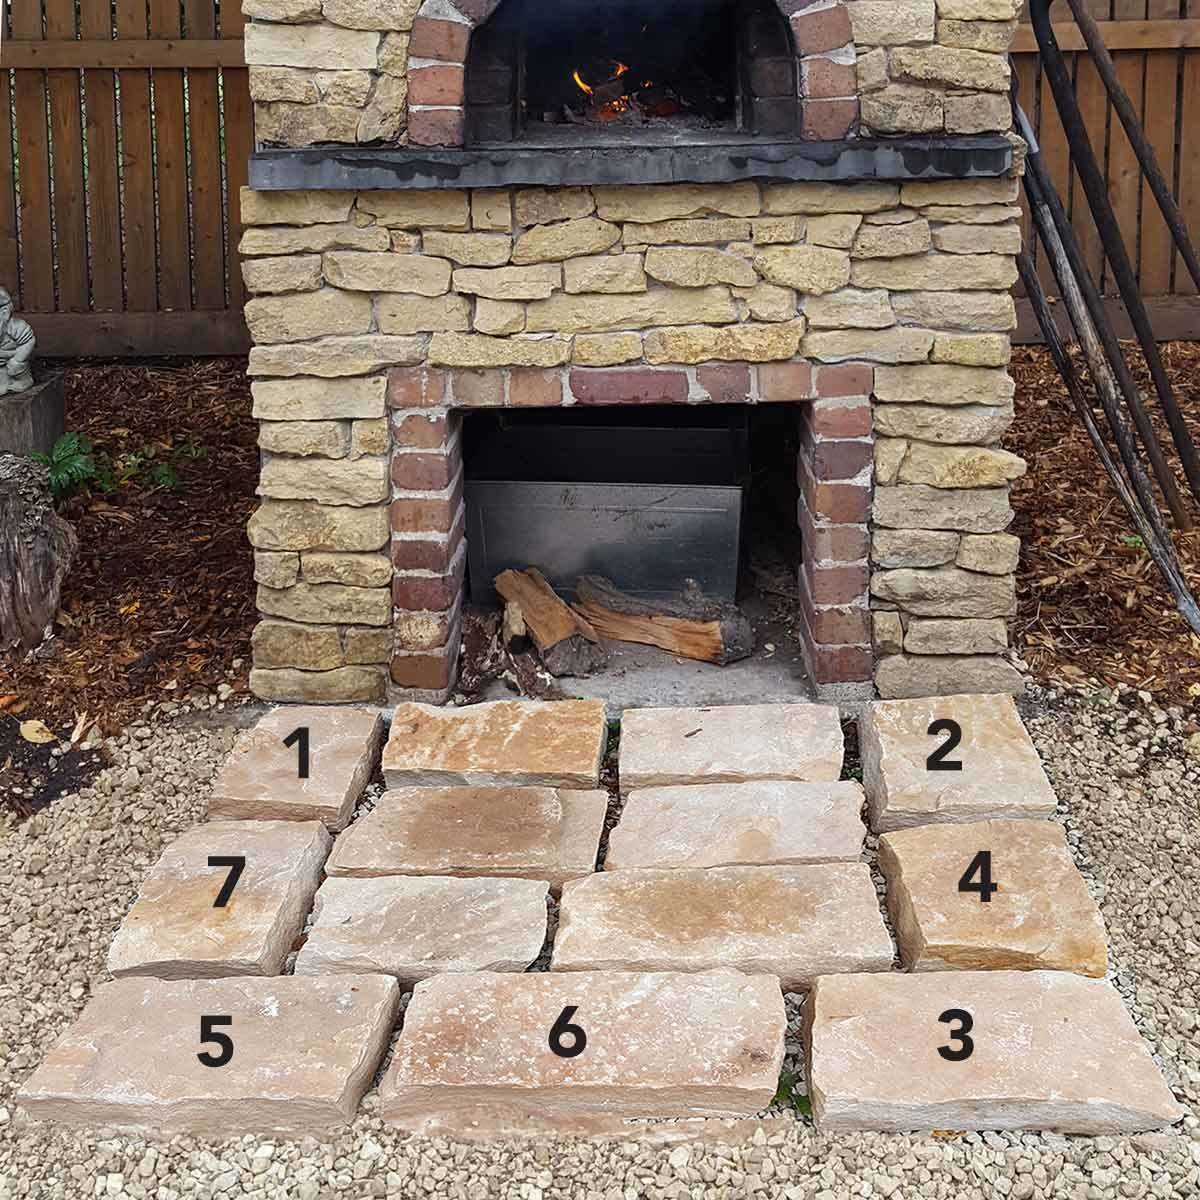 pavers_7 arrangement of brick pavers small patio pizza oven